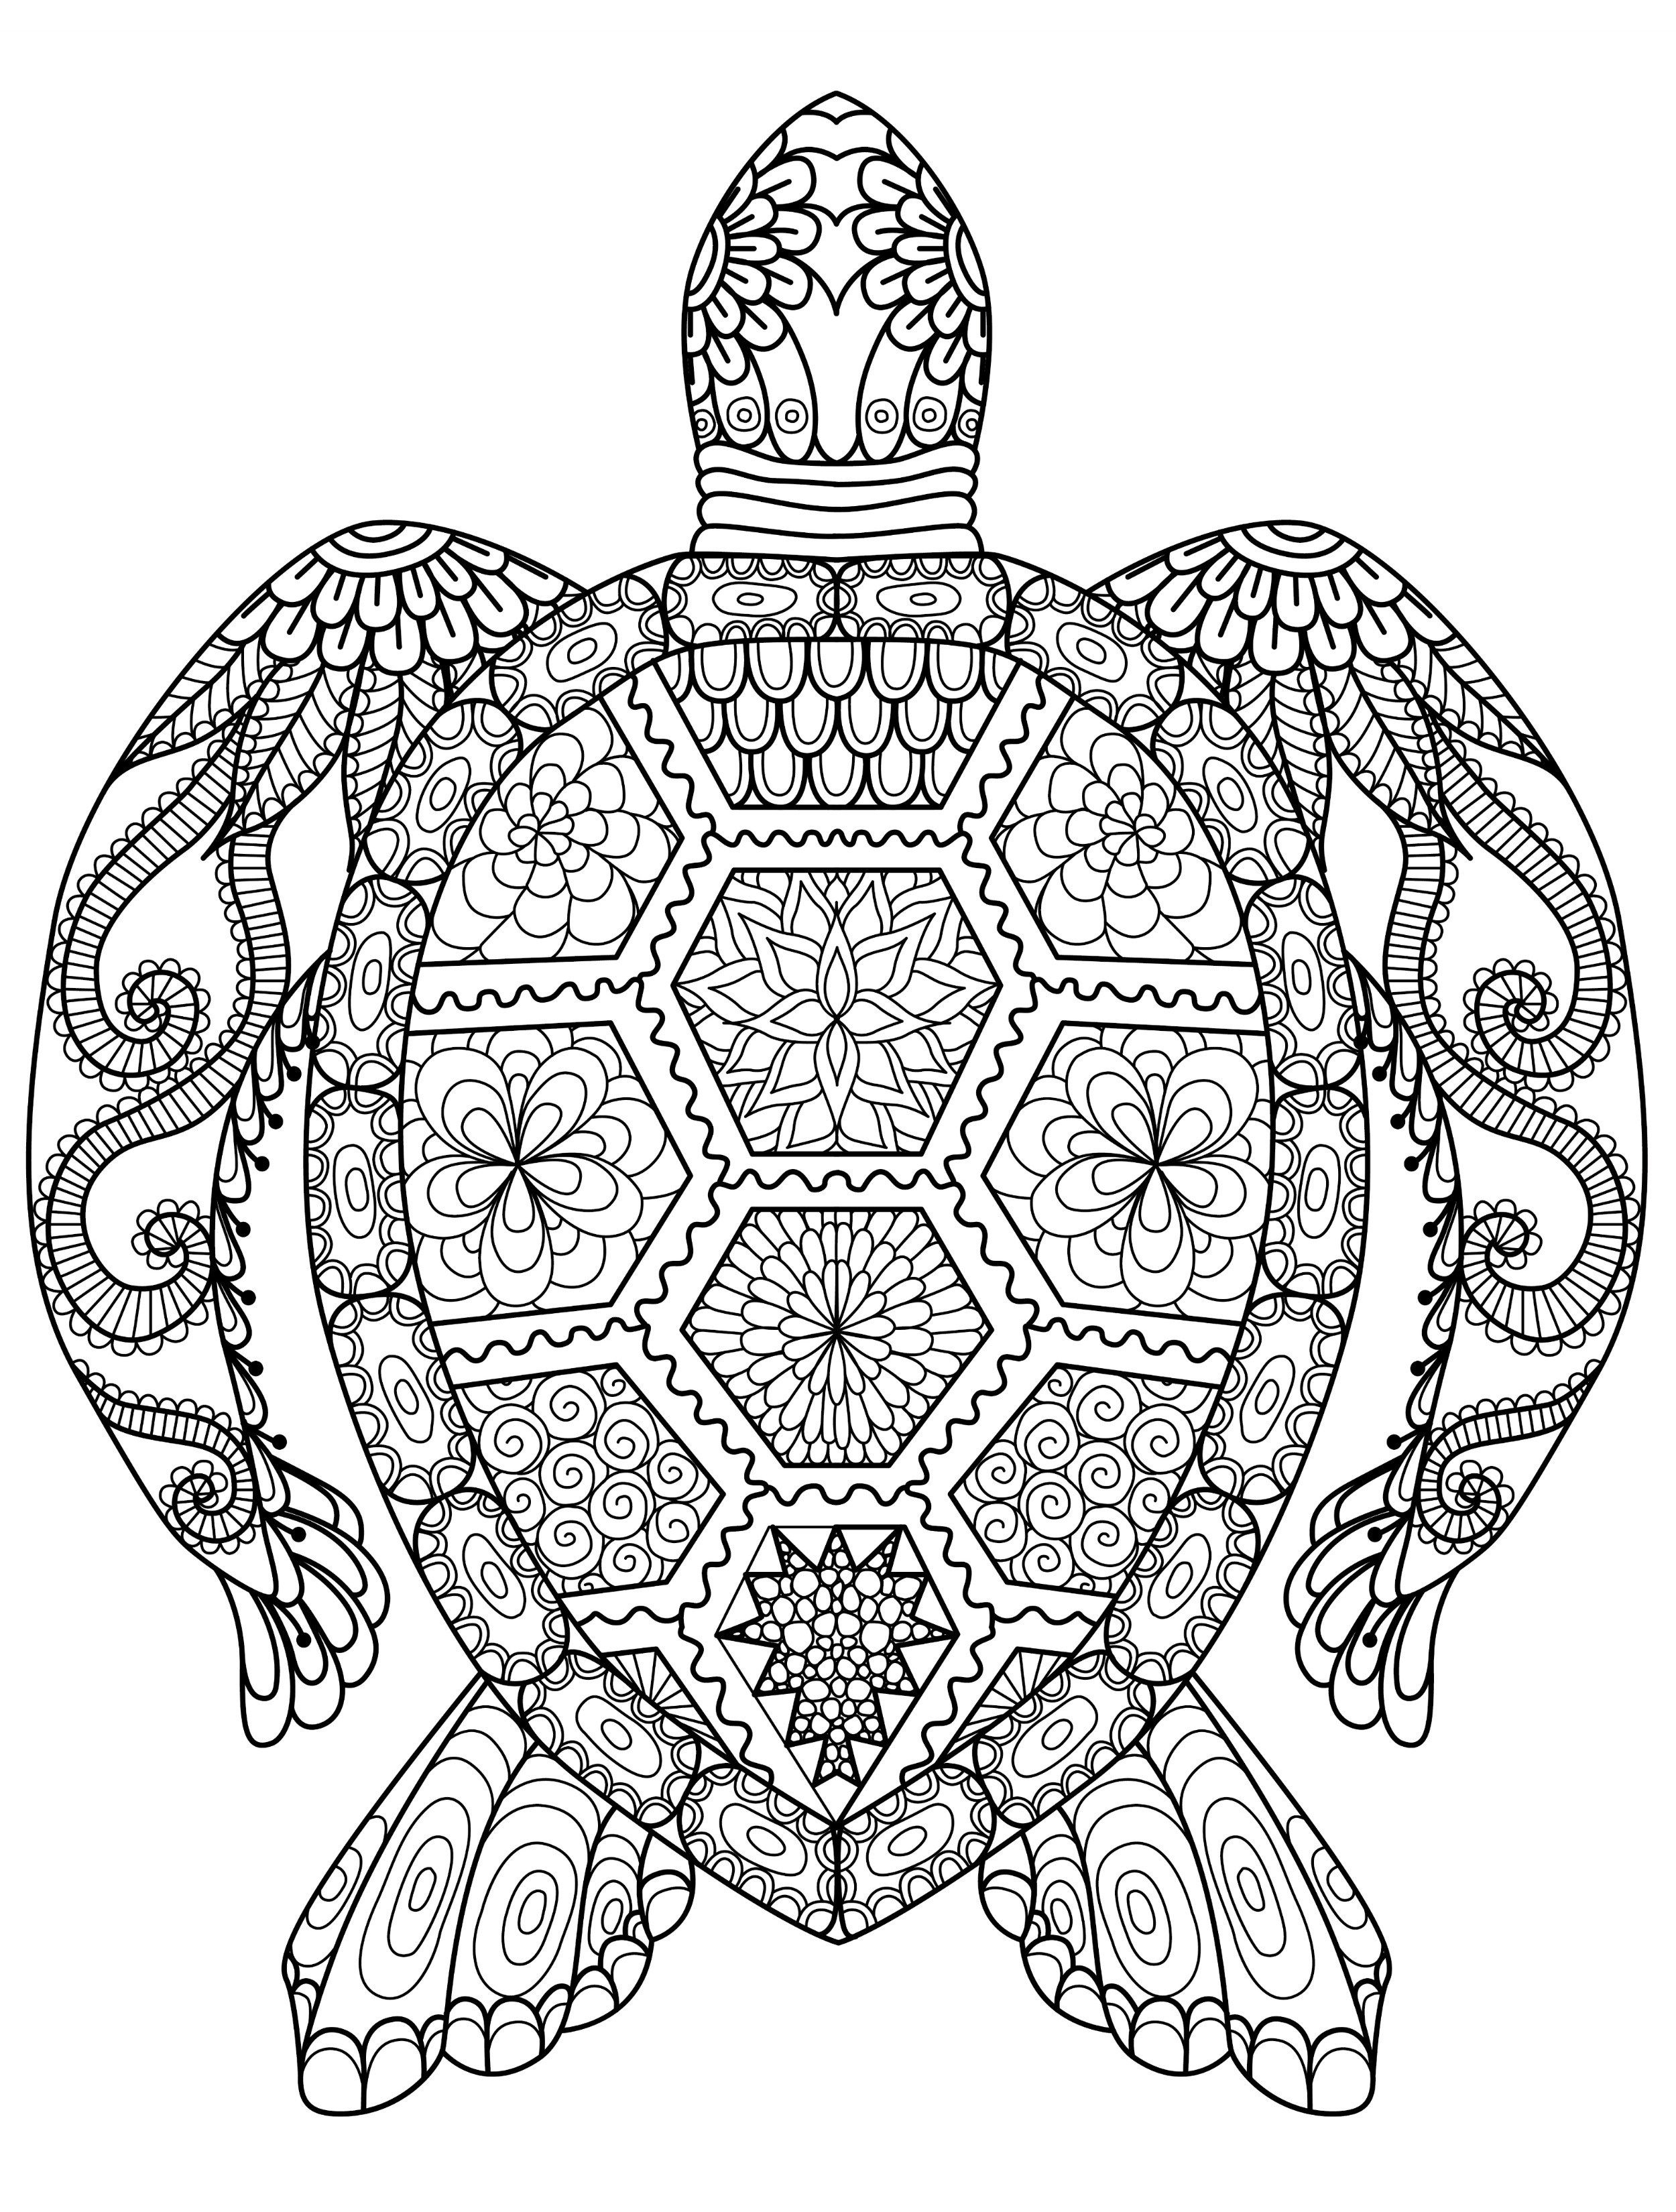 20 Gorgeous Free Printable Adult Coloring Pages …   Adult Co - Free Printable Coloring Book Pages For Adults